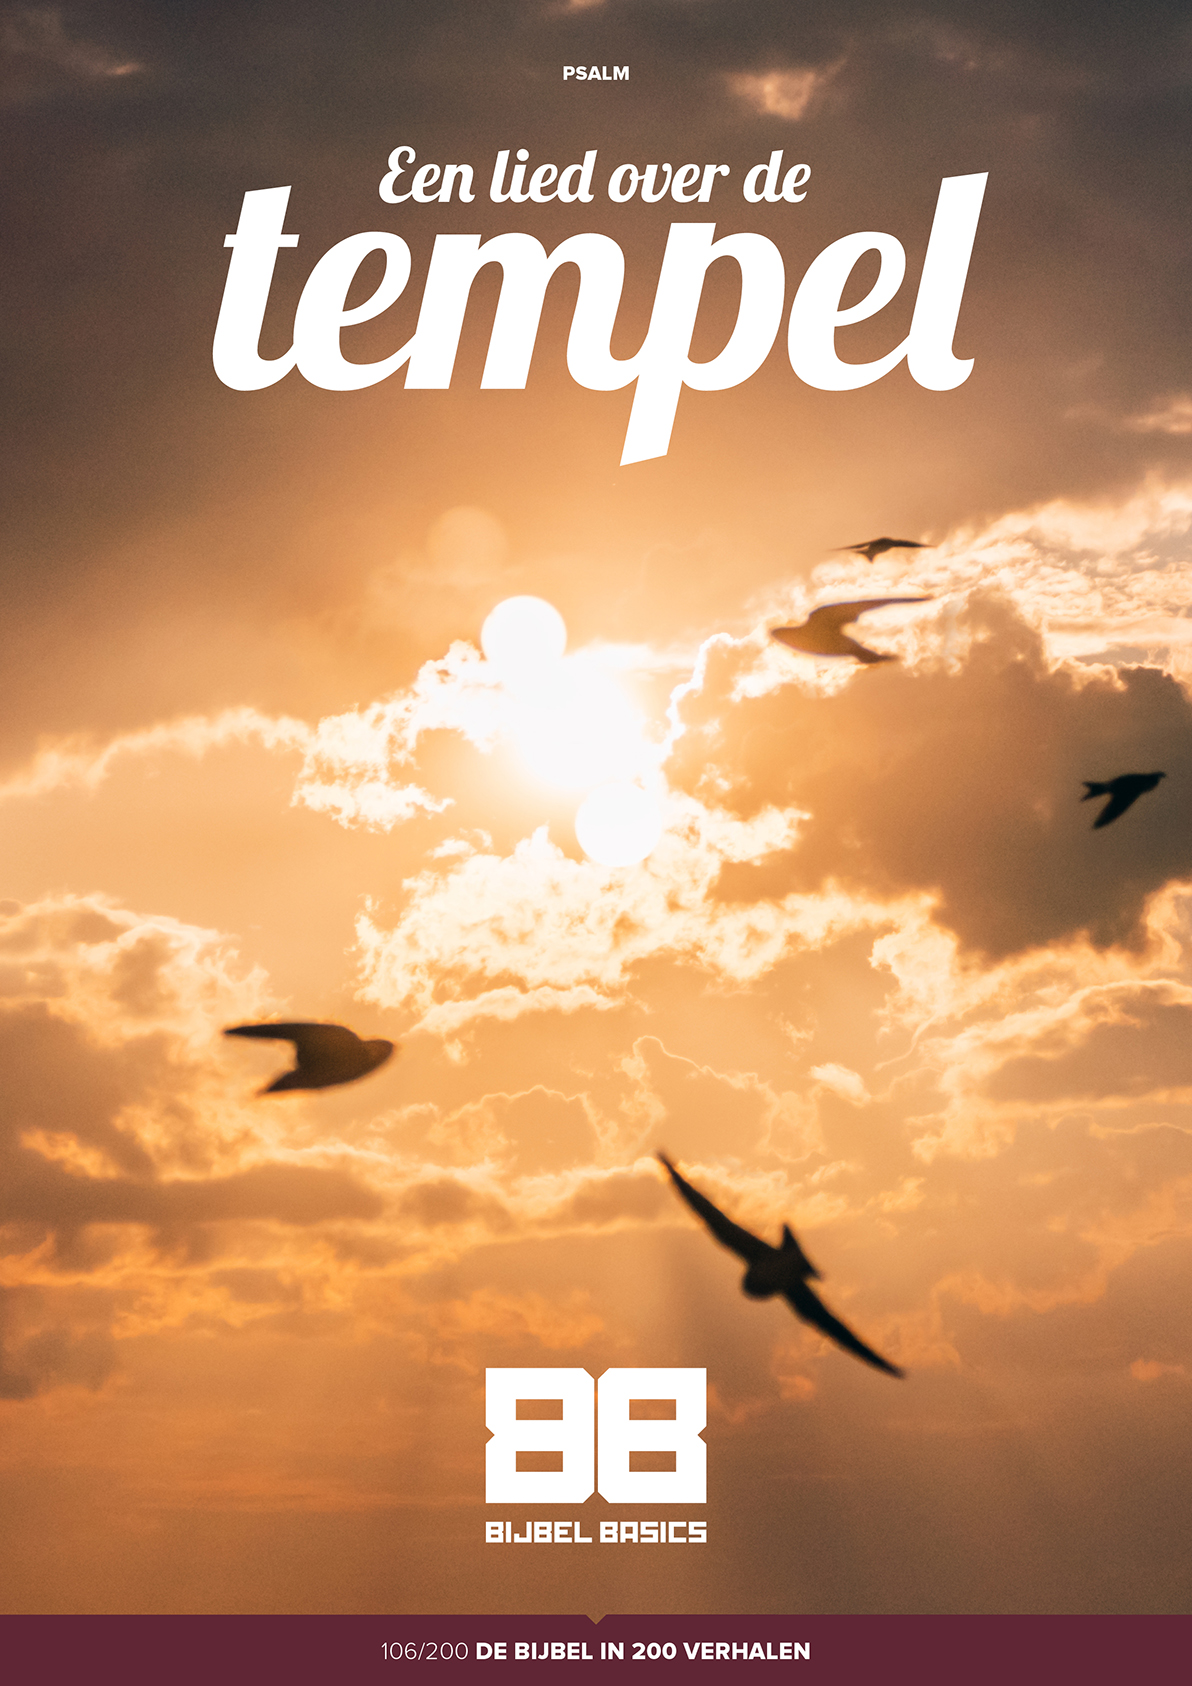 Psalm: Een lied over de tempel